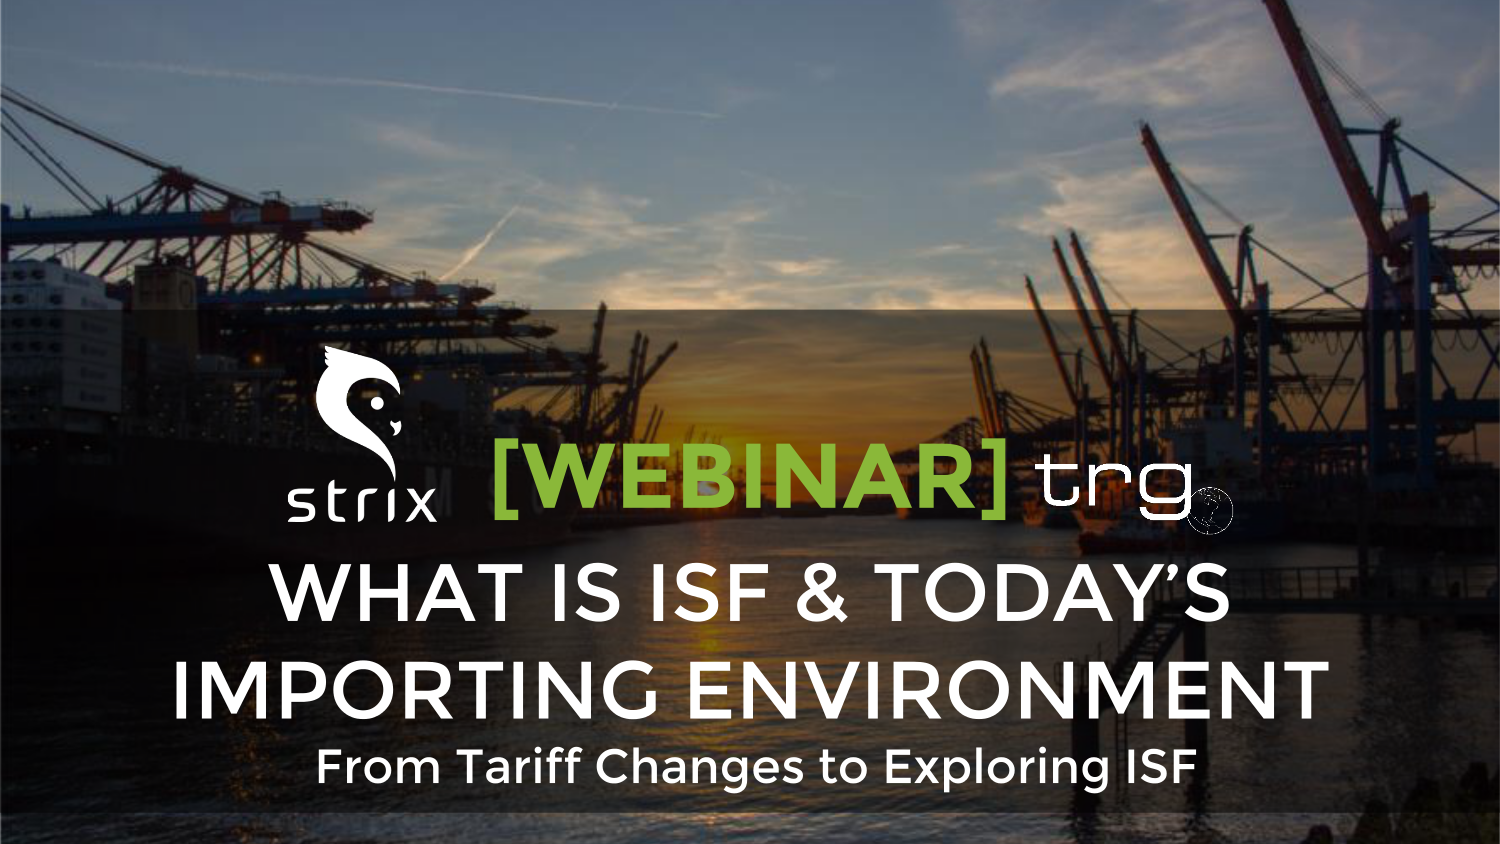 Trade Risk Guaranty holds a webinar discussing the new tariffs on imports from China.